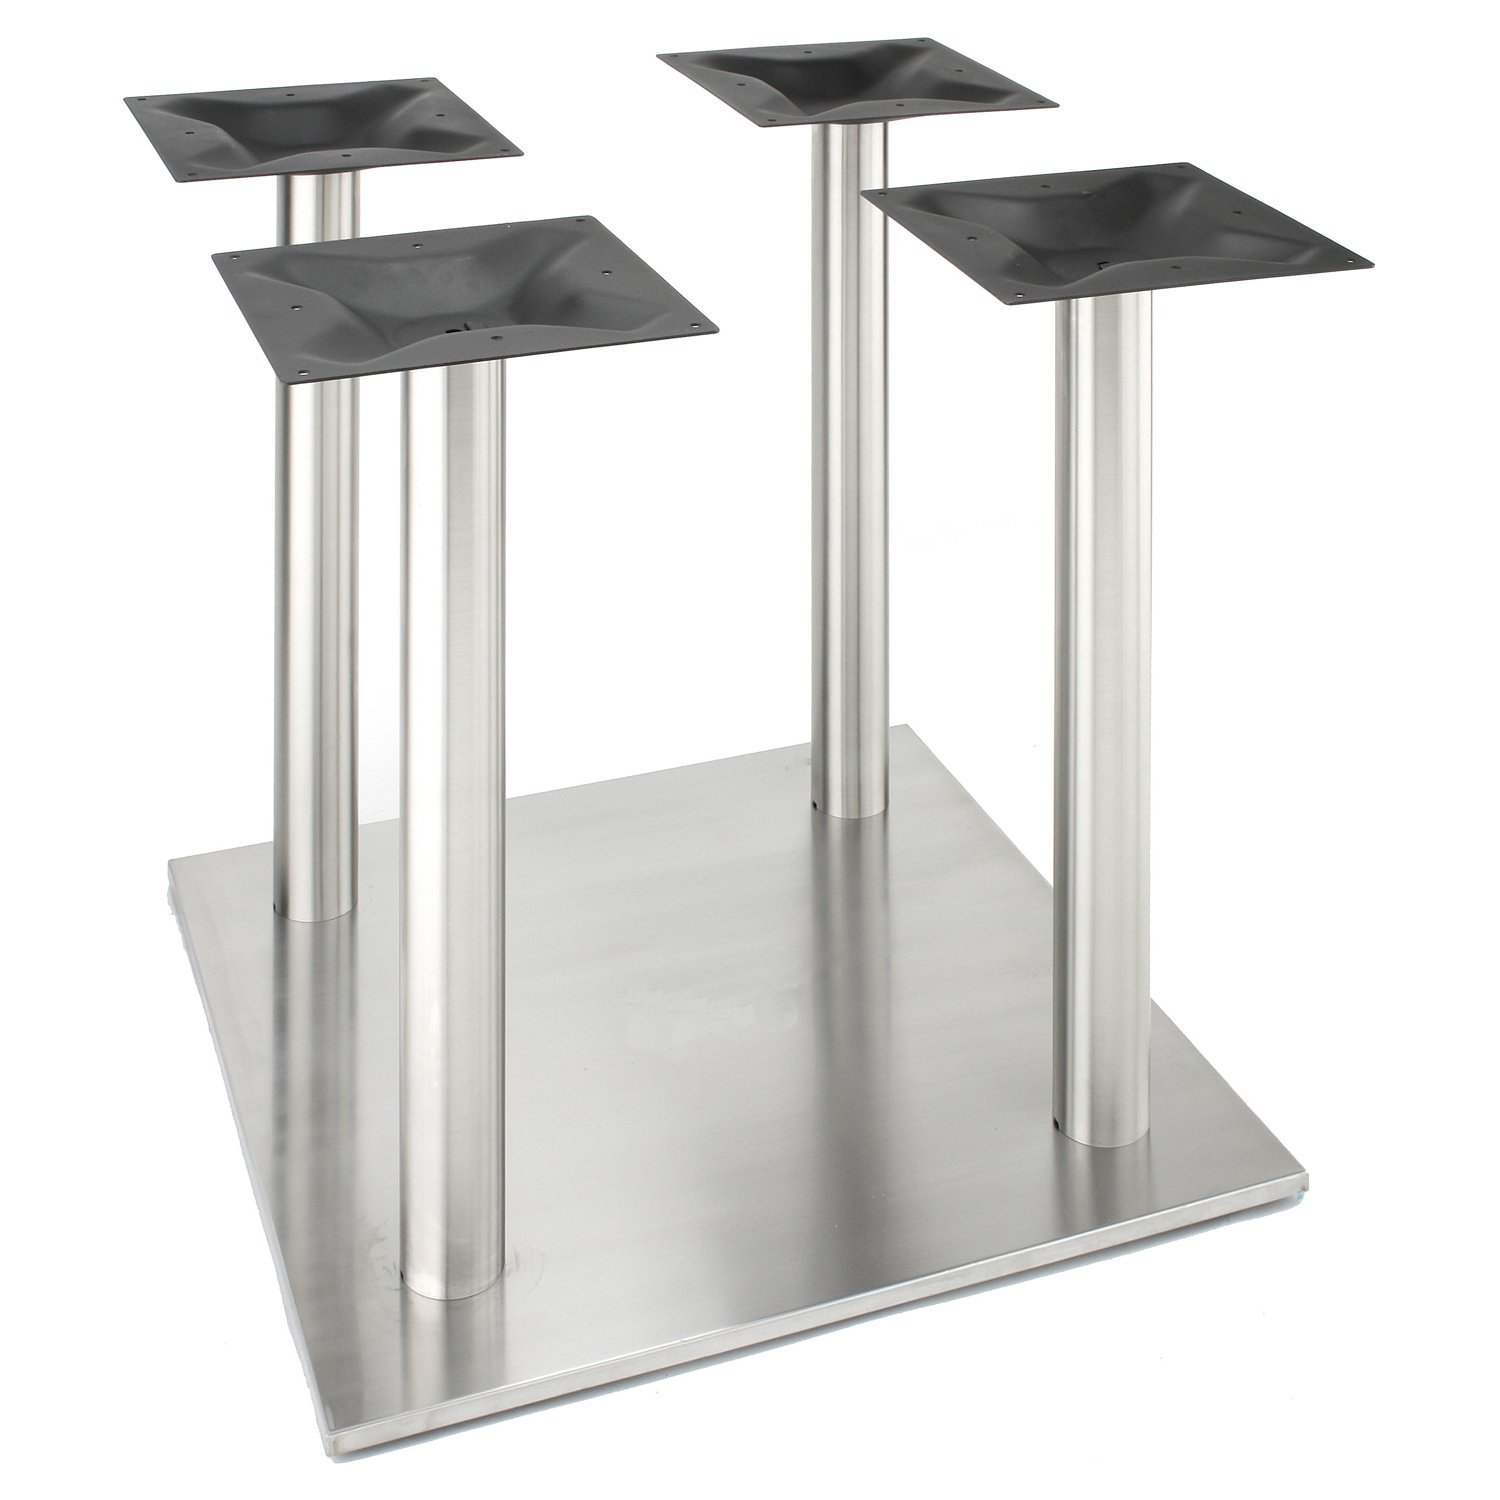 bases base iron metal steel table desk dining legs